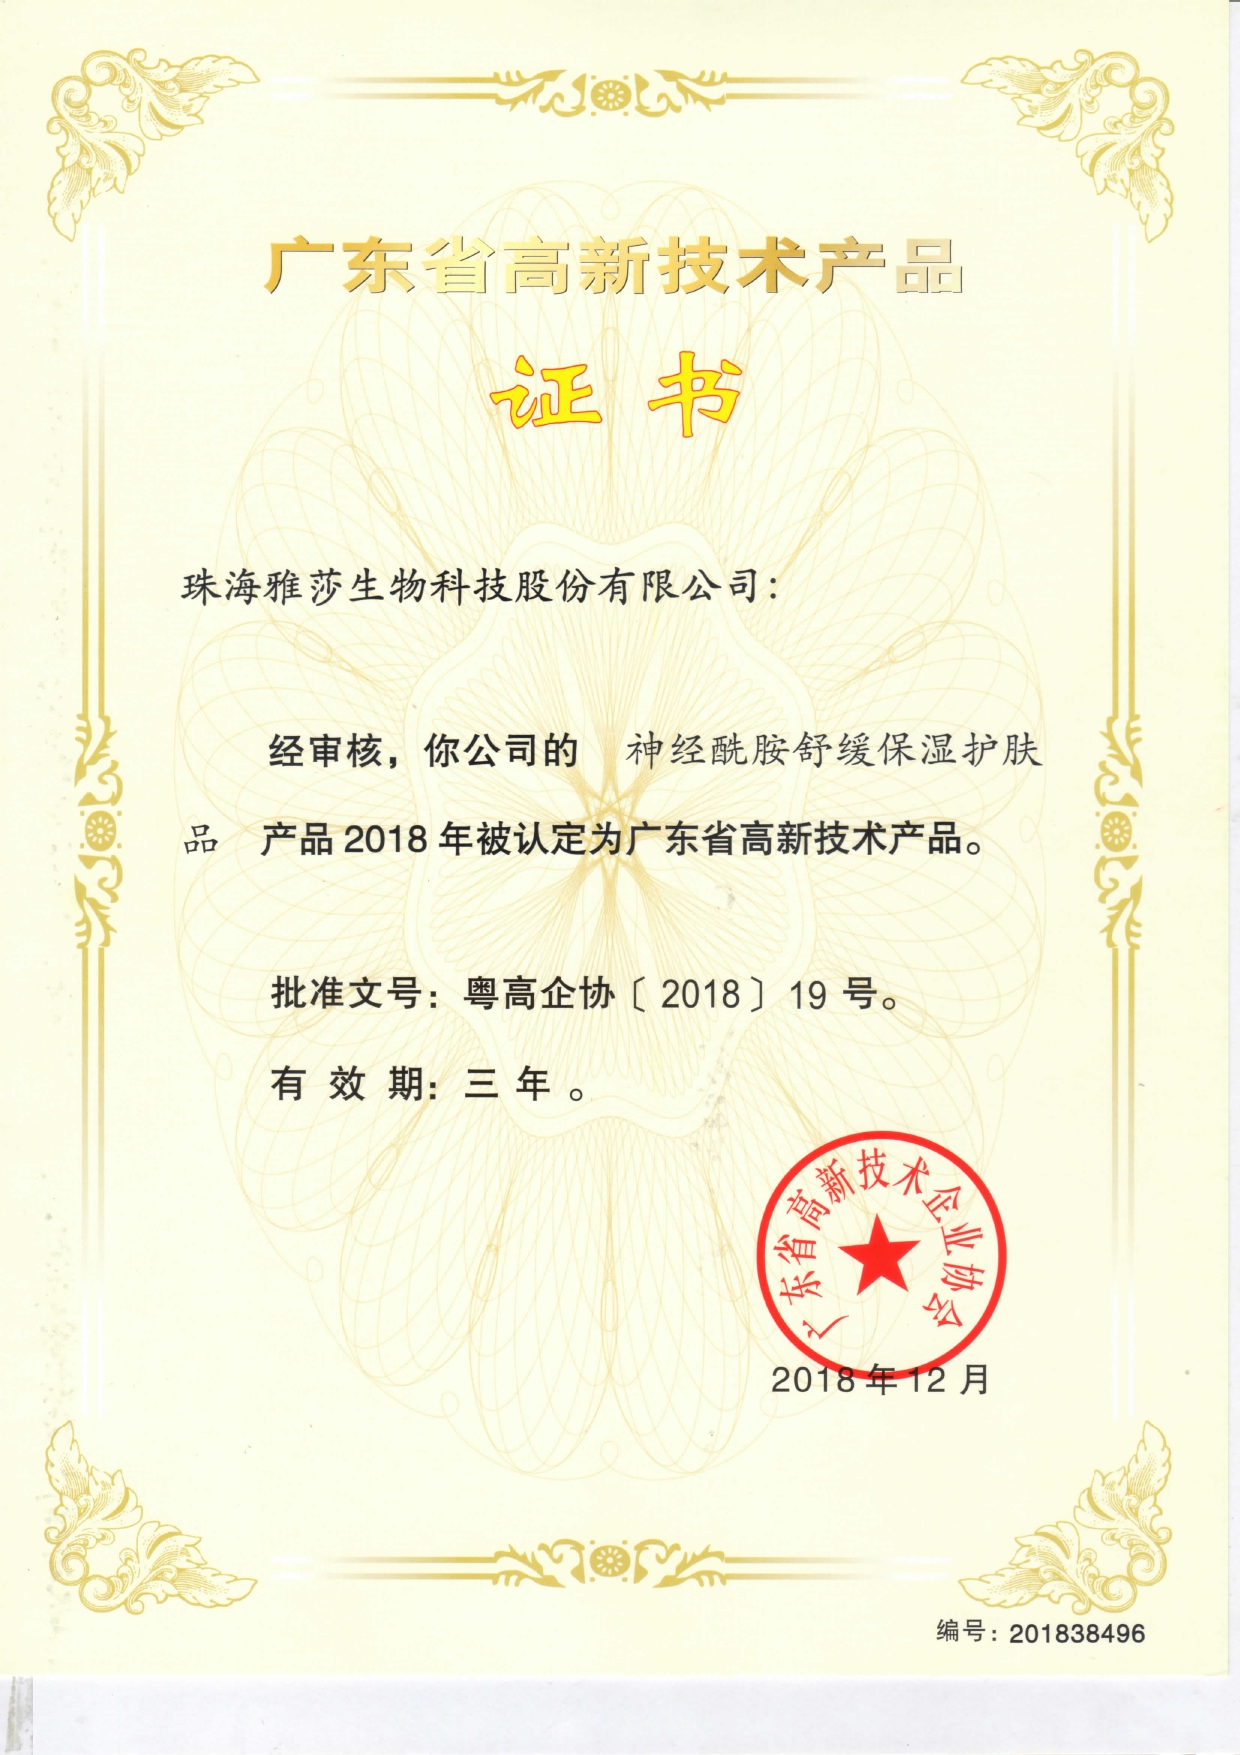 (Ceramide Soothing Spray) Certificate of Guangdong Province New High-Tech Product